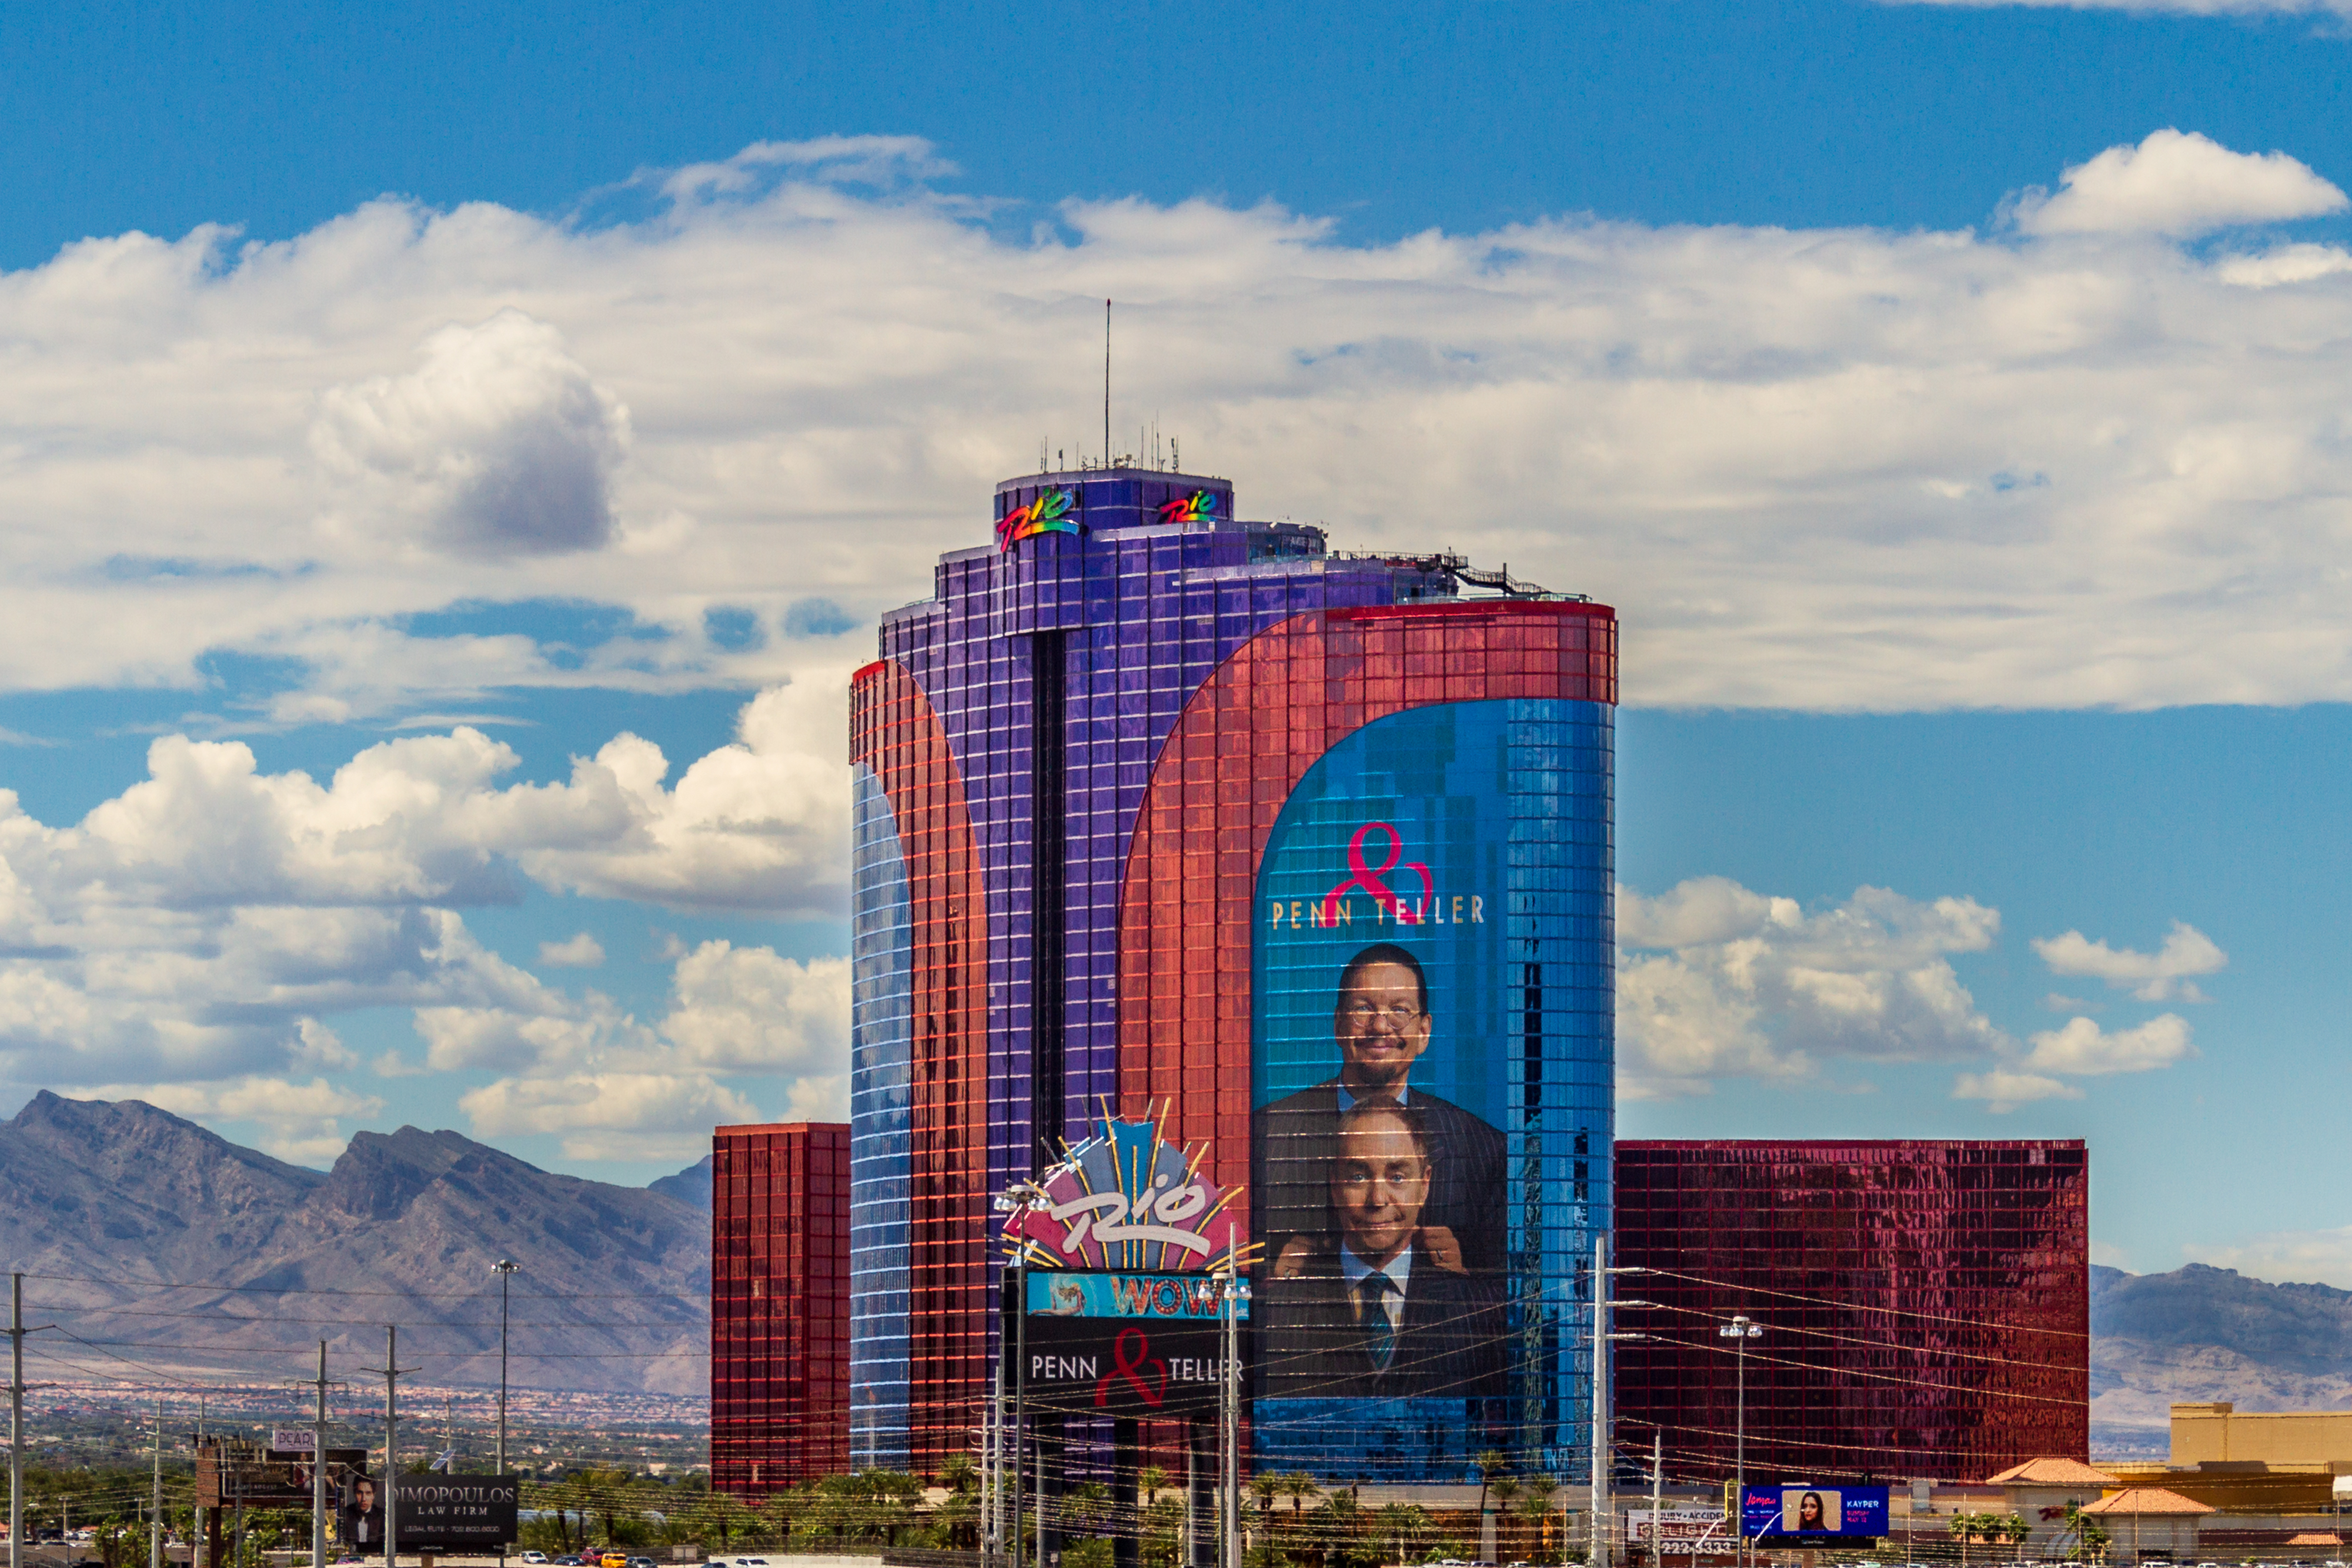 A hotel with blue, red, and purple windows with mountains and a blue cloudy sky behind it.